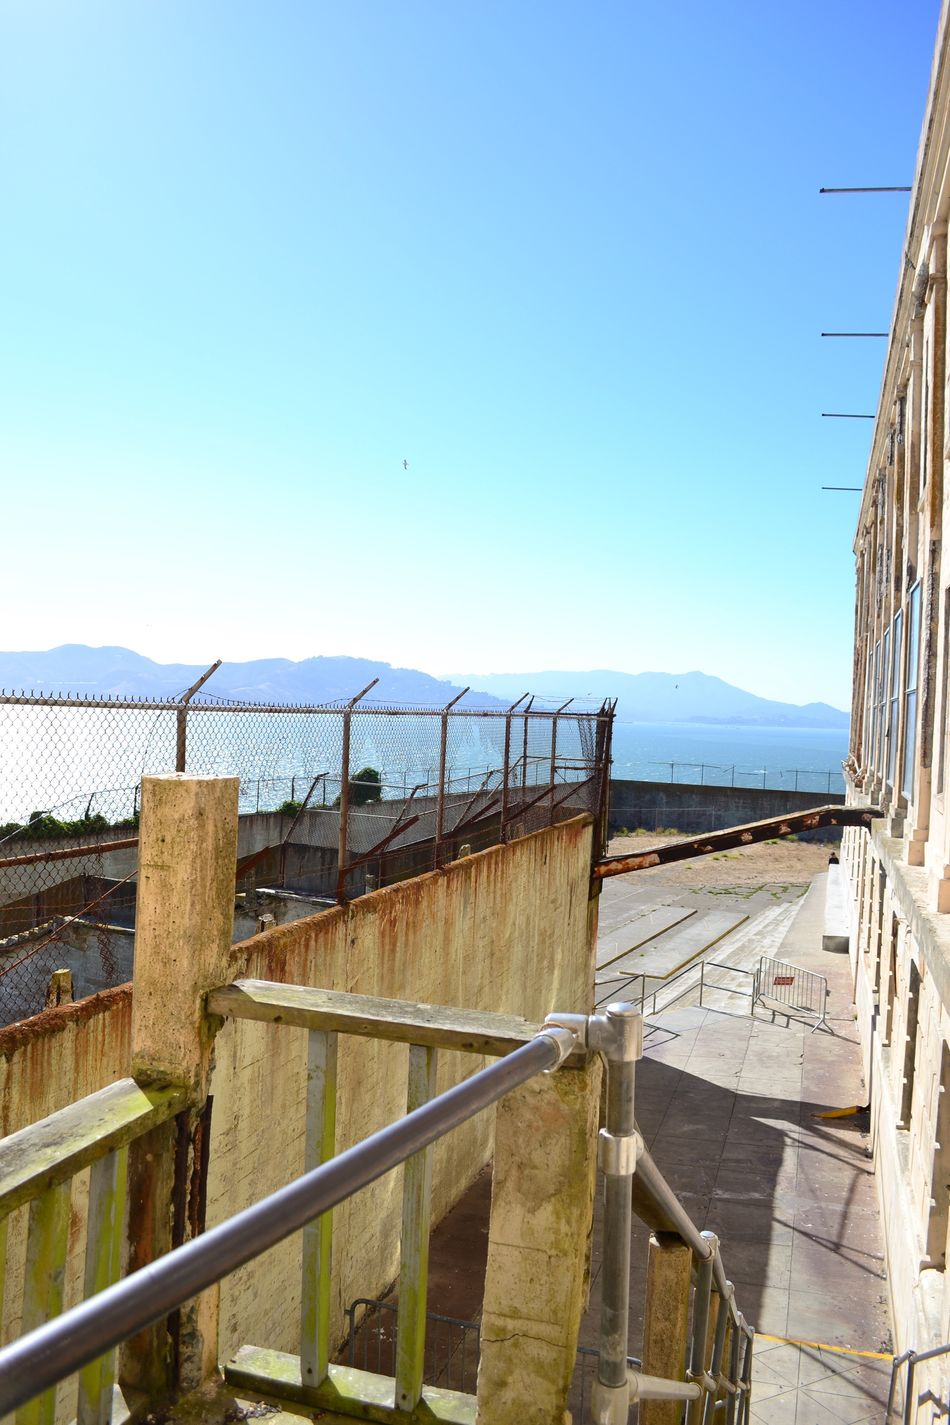 Built Structure Sea Blue Architecture Sunlight Water Clear Sky Railing Sky Day Outdoors No People Nature Building Exterior Scenics Tranquility Travel Destinations Horizon Over Water Bridge - Man Made Structure Beauty In Nature Nofilter SanFranciscoBay Sanfrancisco Alcatraz Prison